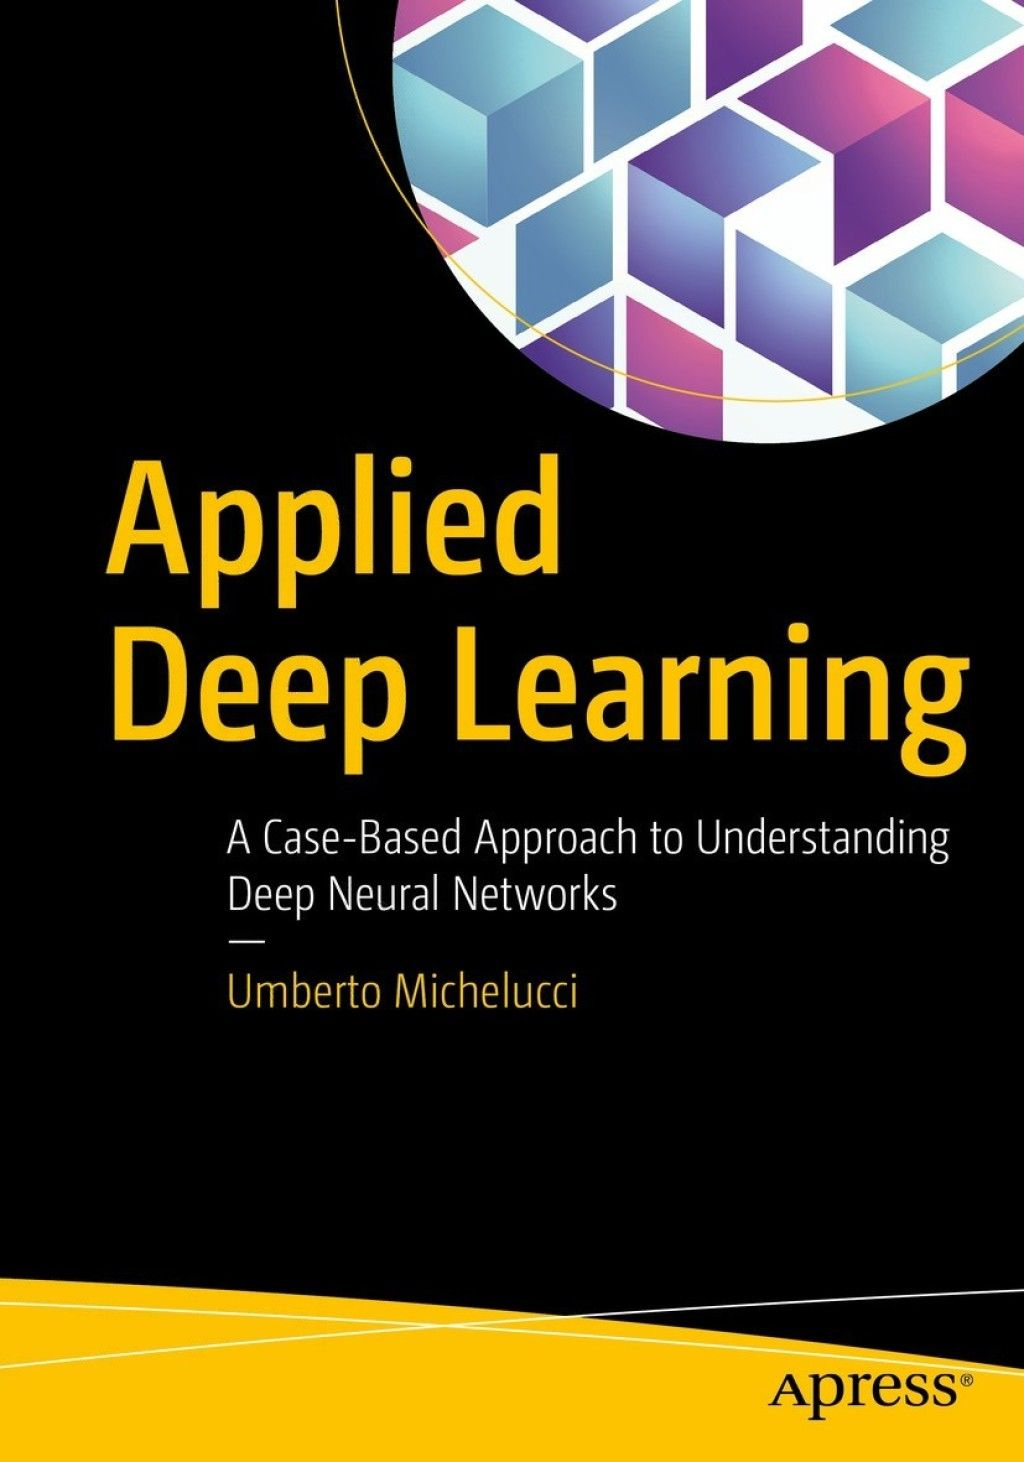 Applied Deep Learning (eBook) in 2019 | Products | Deep learning, Ai